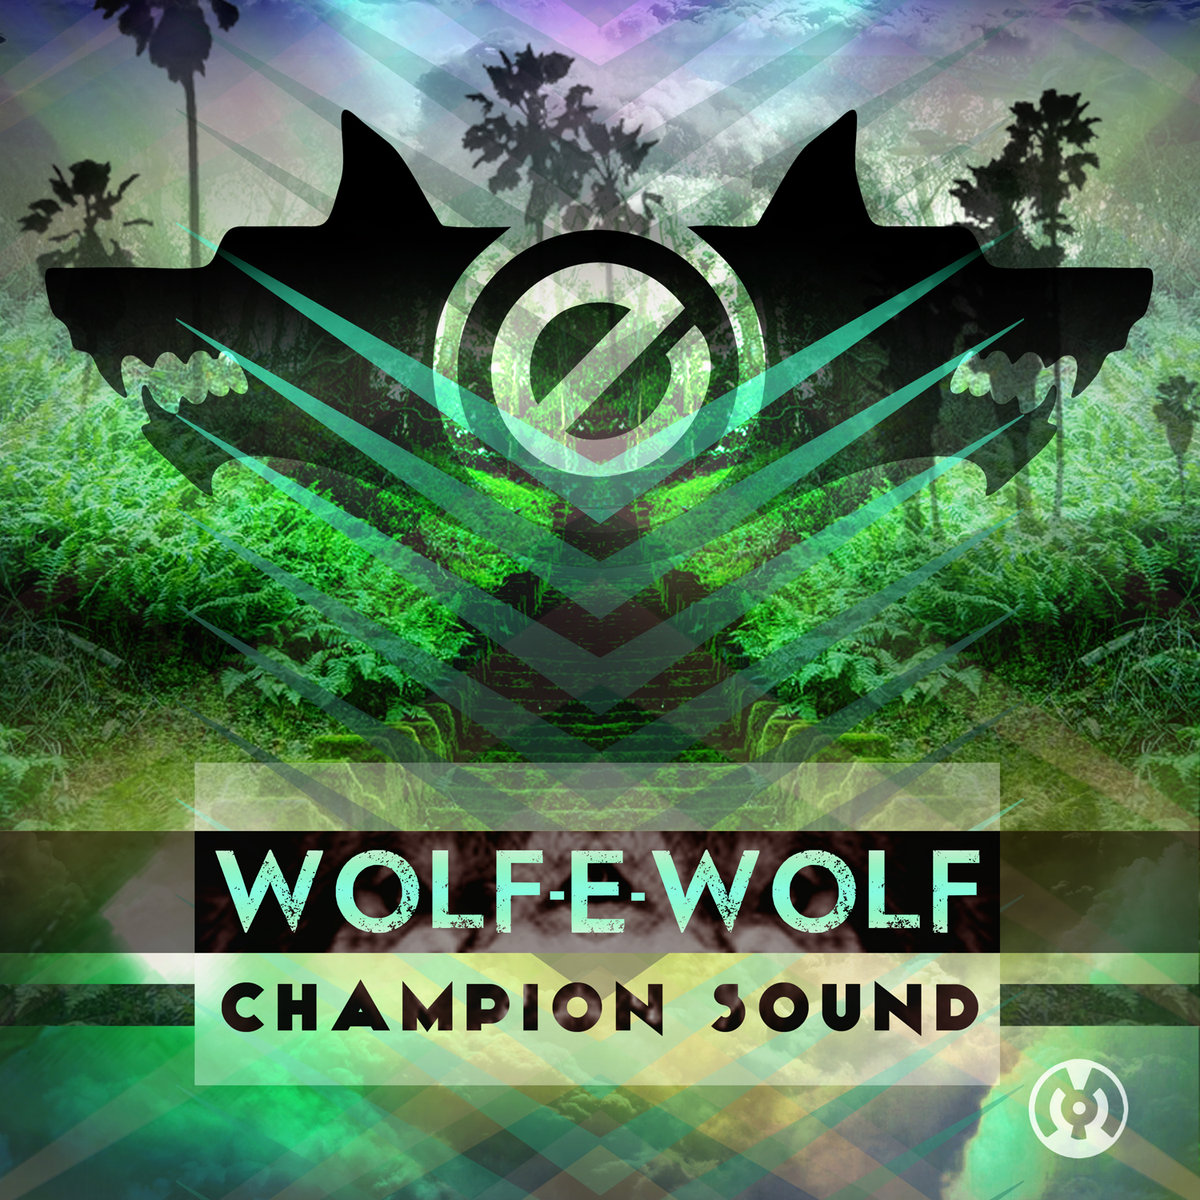 Wolf-e-Wolf - The Beach @ 'Champion Sound' album (electronic, dubstep)